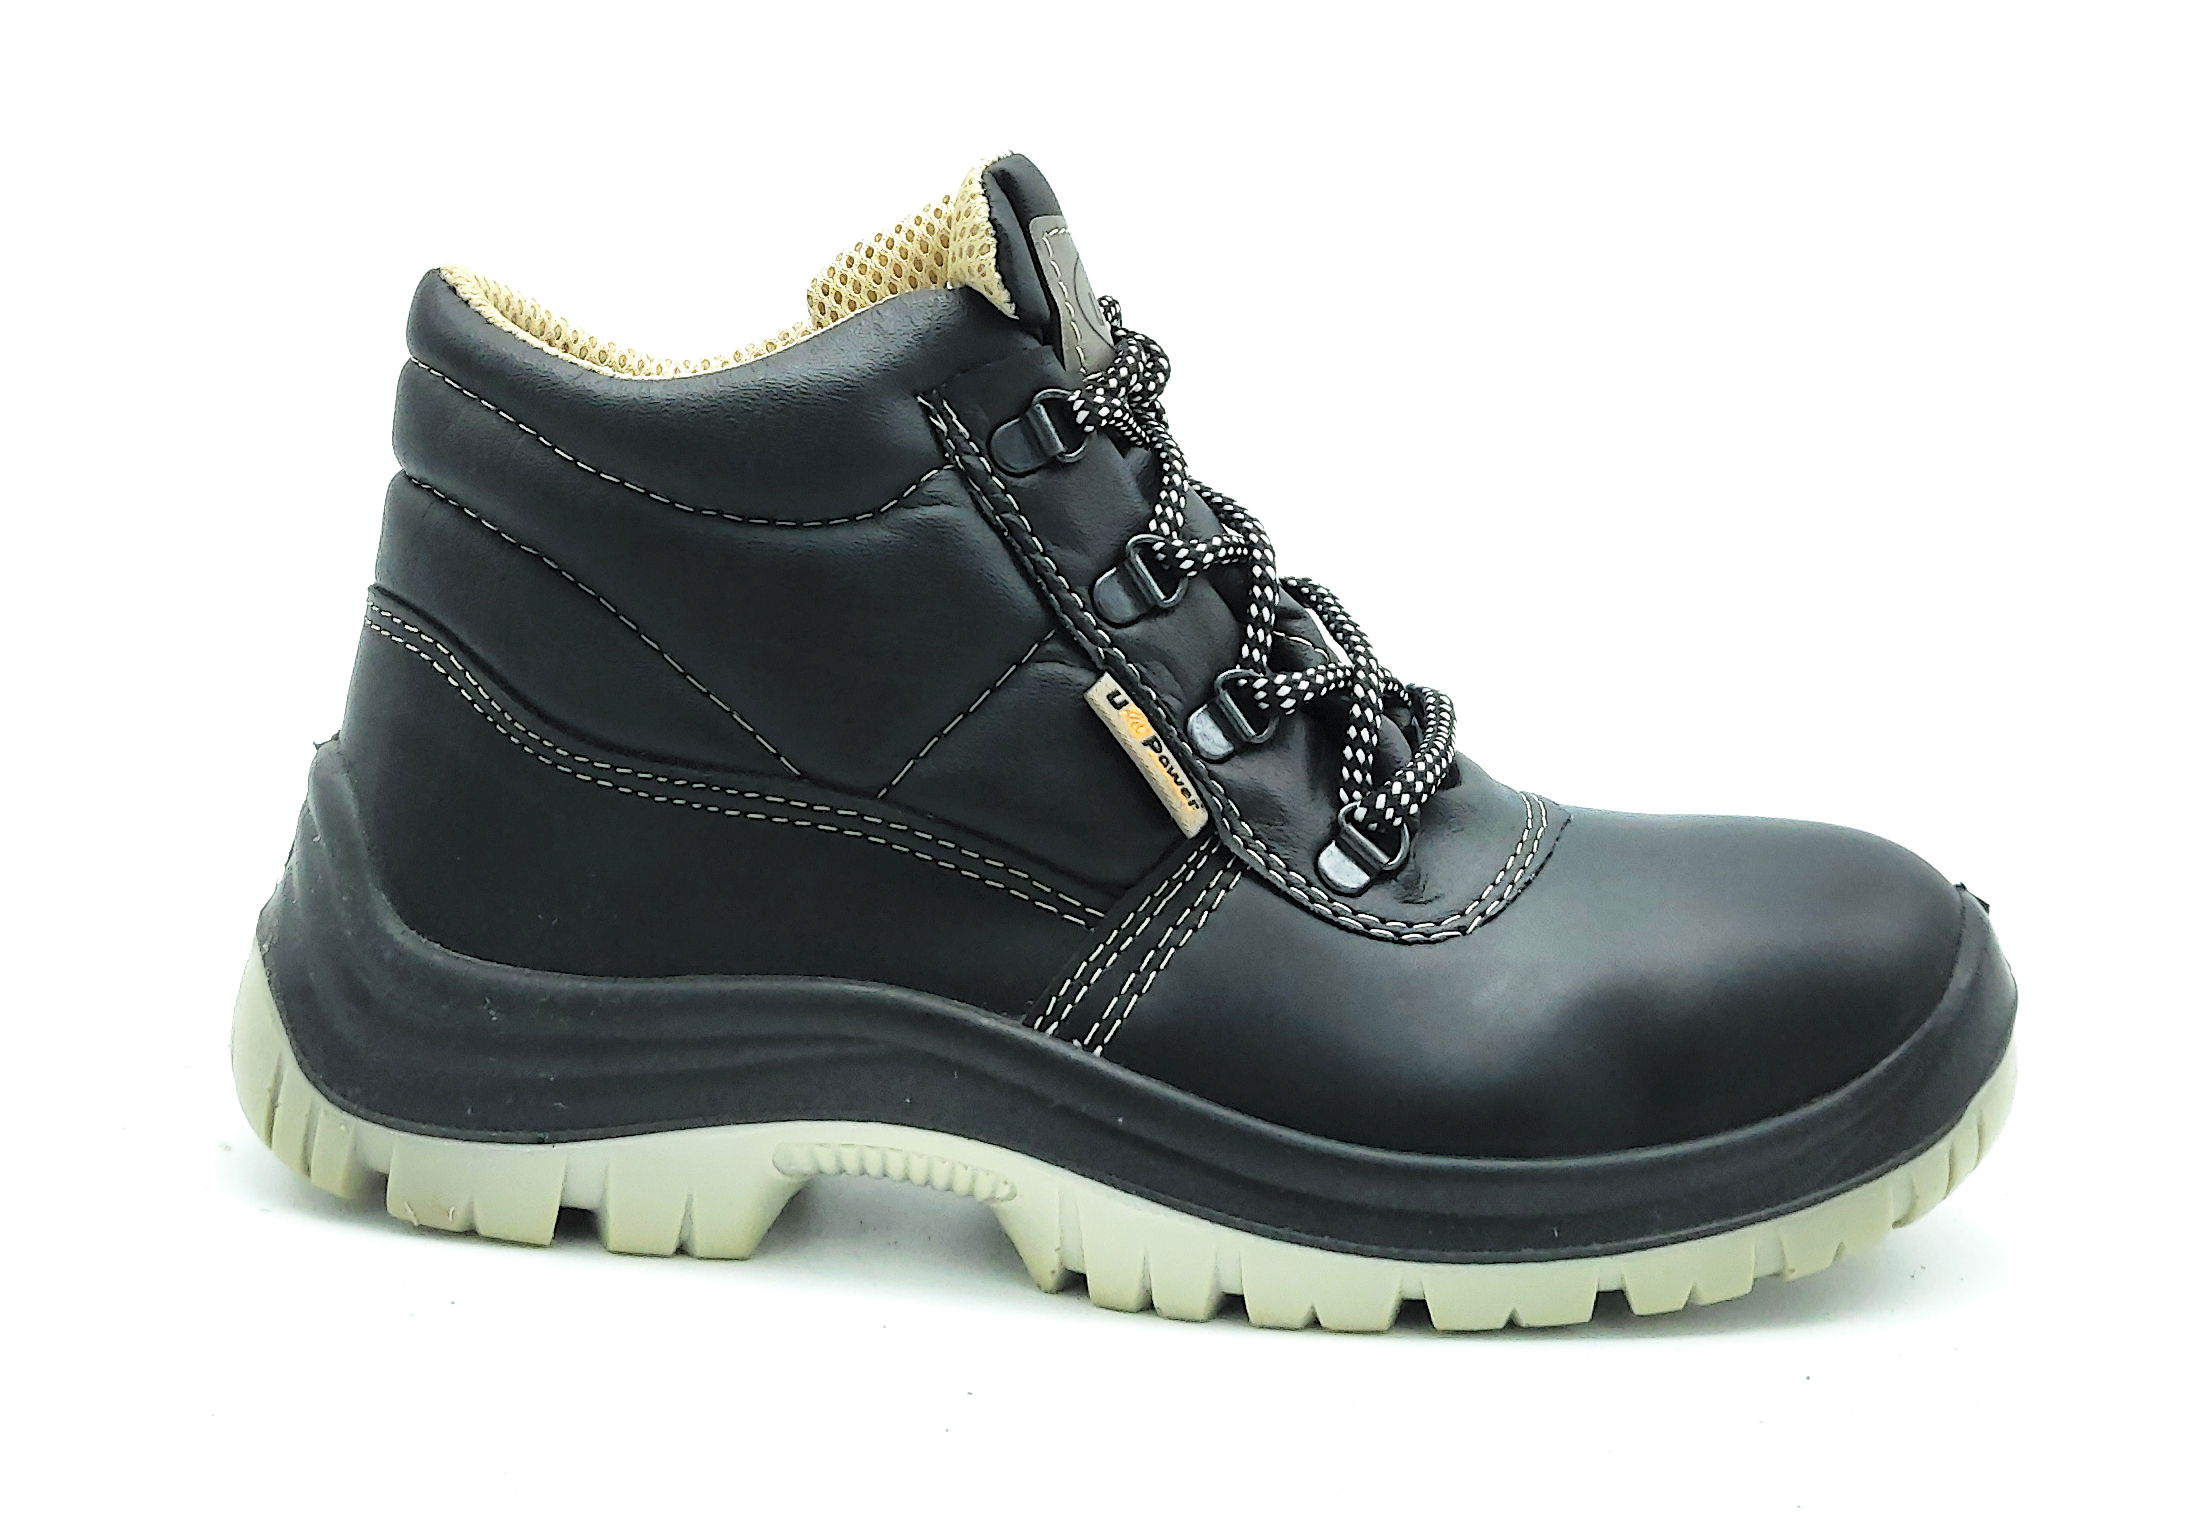 Shoes ankle boots lace-up-accident drivers non-slip waterproof